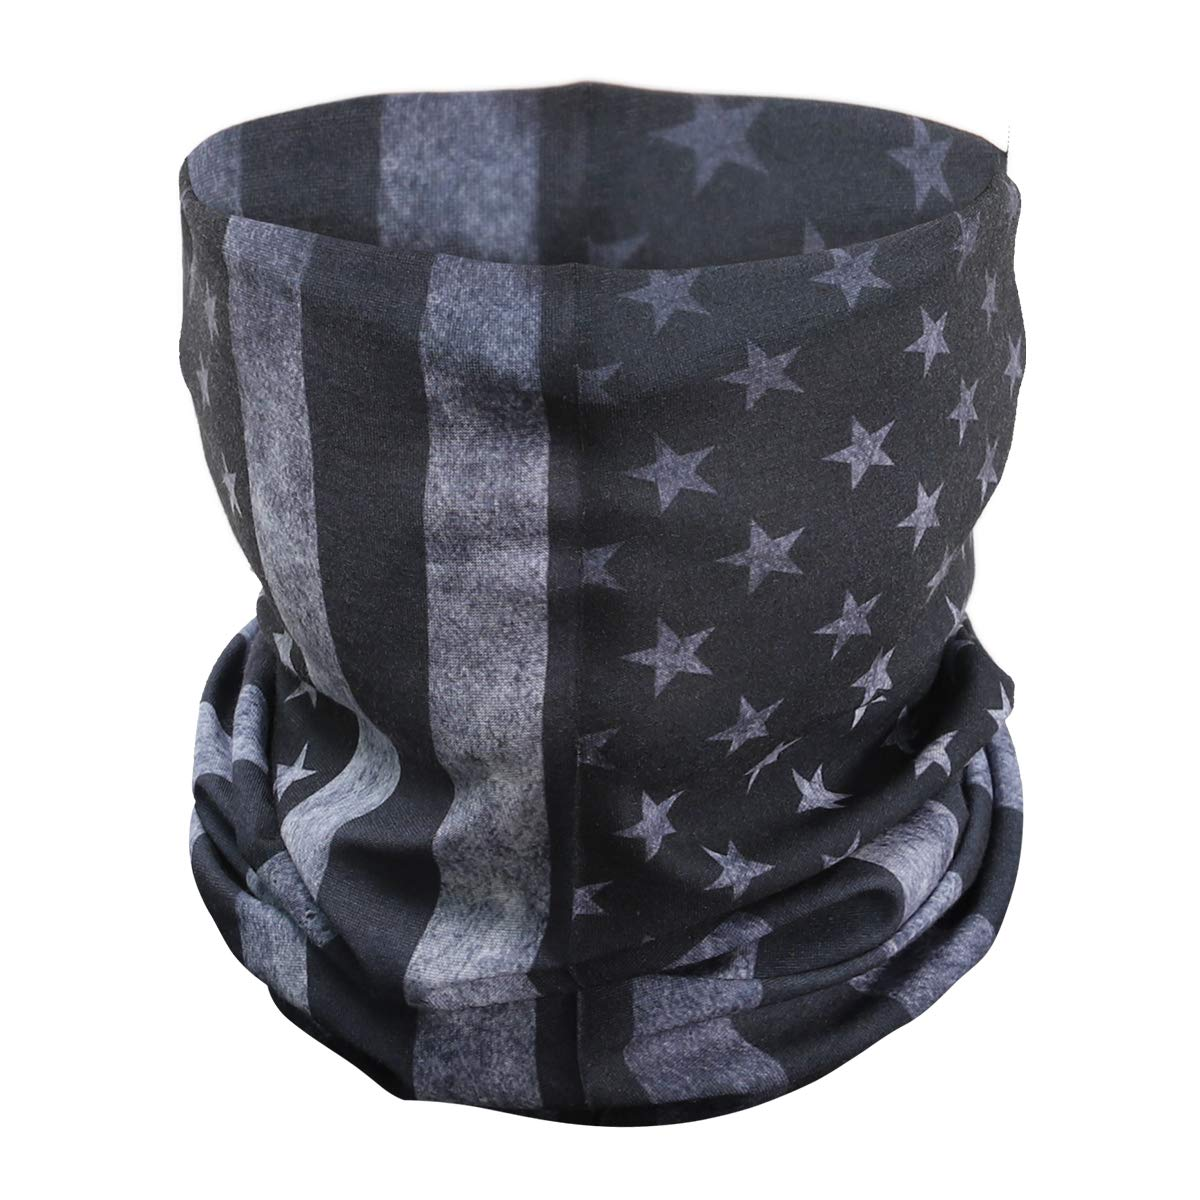 PAMASE American Flag Outdoor Face Mask- Multifunctional Seamless Microfiber American Flag UV Protection Face Neck Shields Headwear for Men&Women Motorcycle Hiking Cycling Ski Snowboard(Grey)